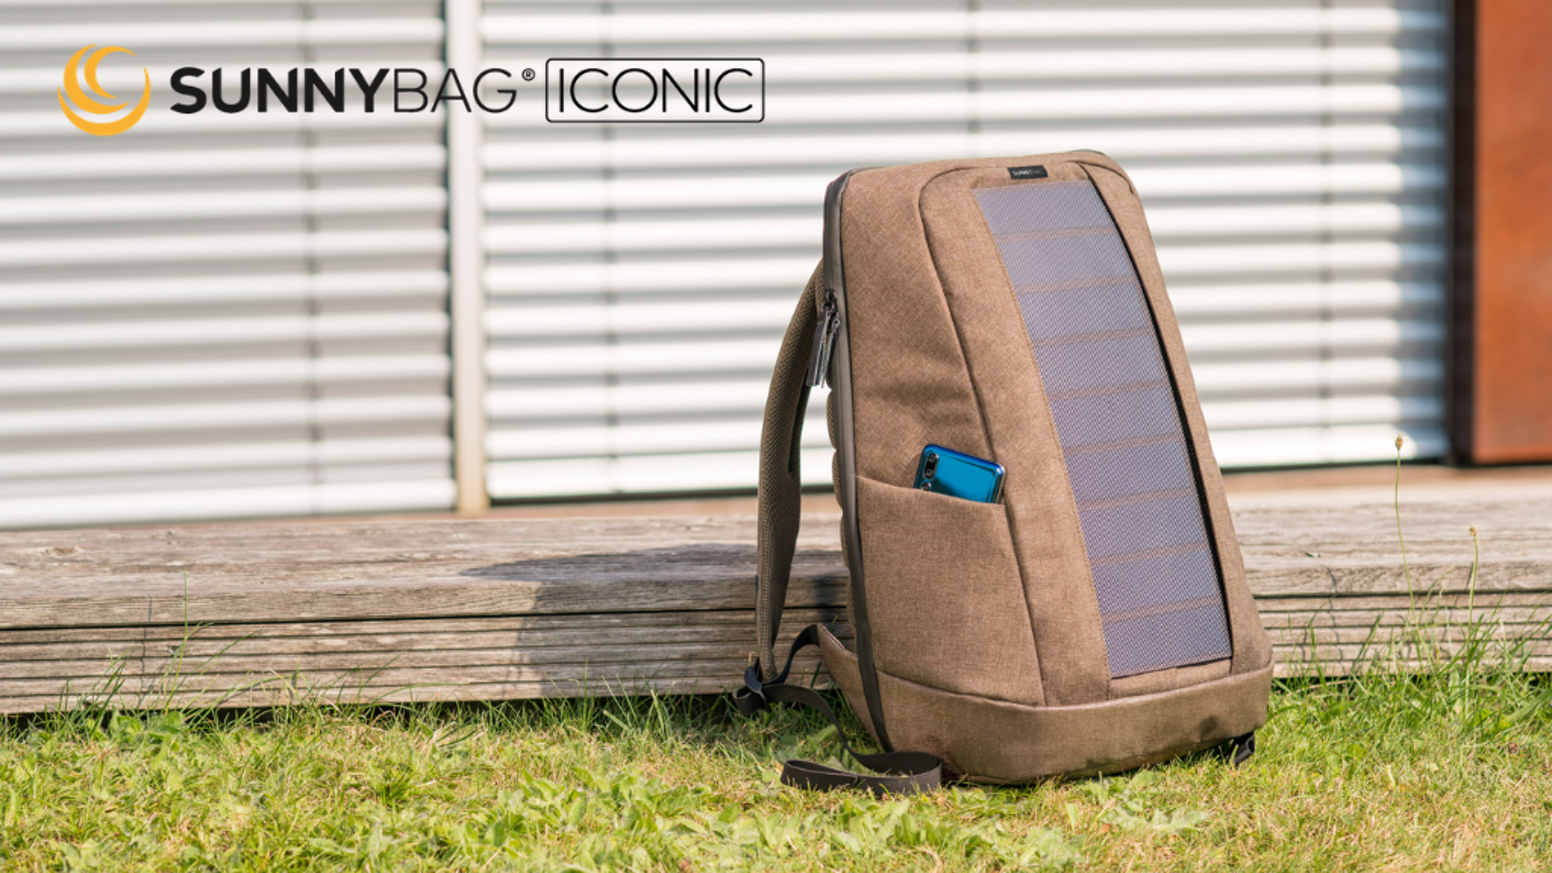 SUNNYBAG ICONIC is fusing style, technology, and respect for nature in one go.